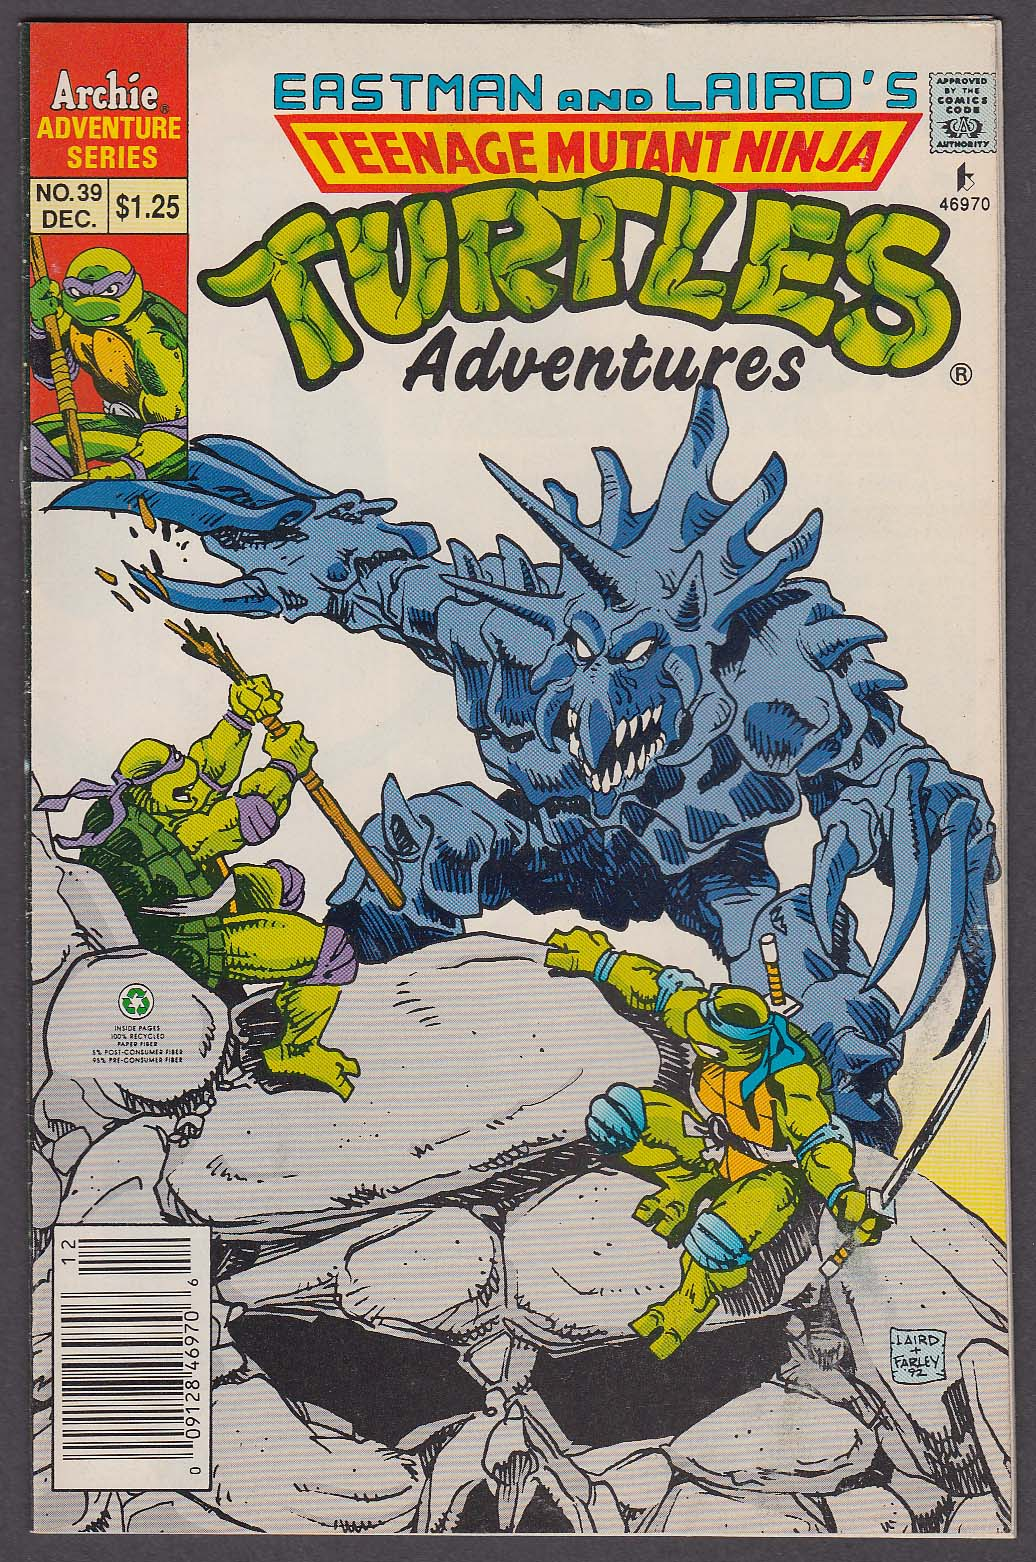 TEENAGE MUTANT NINJA TURTLES ADVENTURES #39 Archie comic book 12 1992